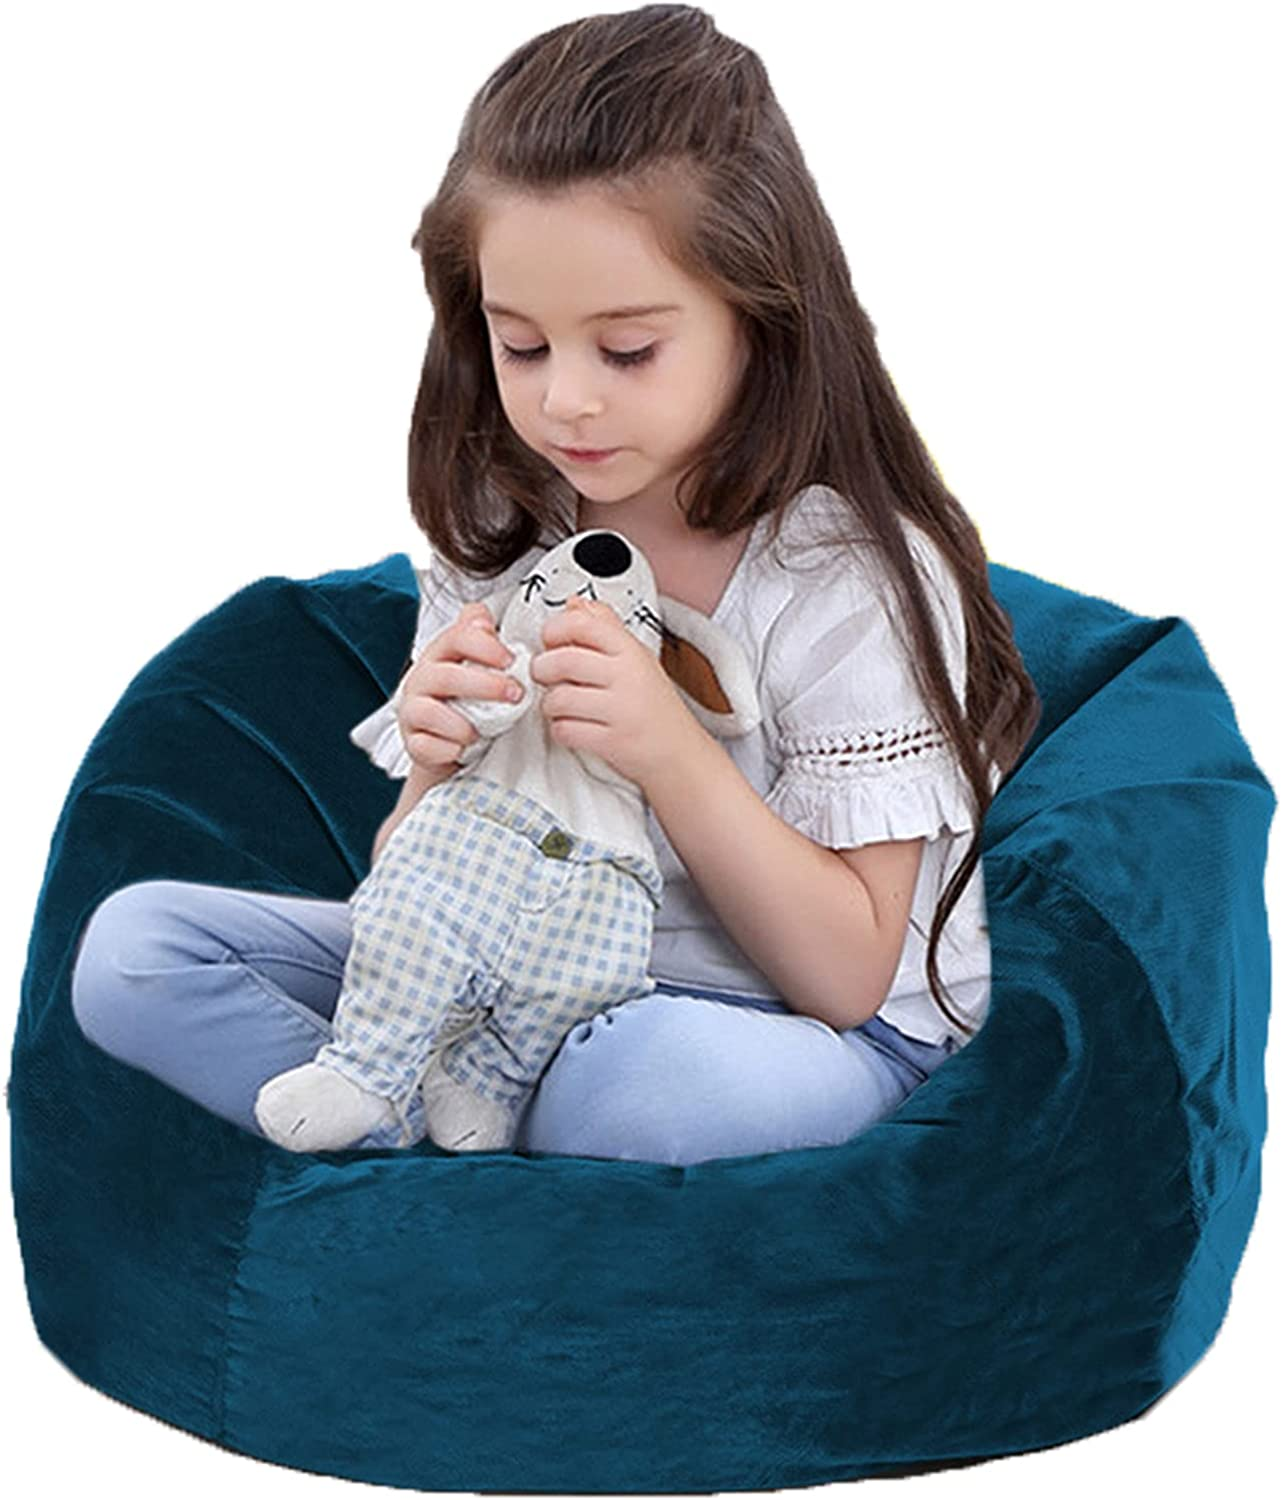 Children Bean Bag Chair Snuggle Credence Foam Case Nest Be Filled Limited time cheap sale Bird's